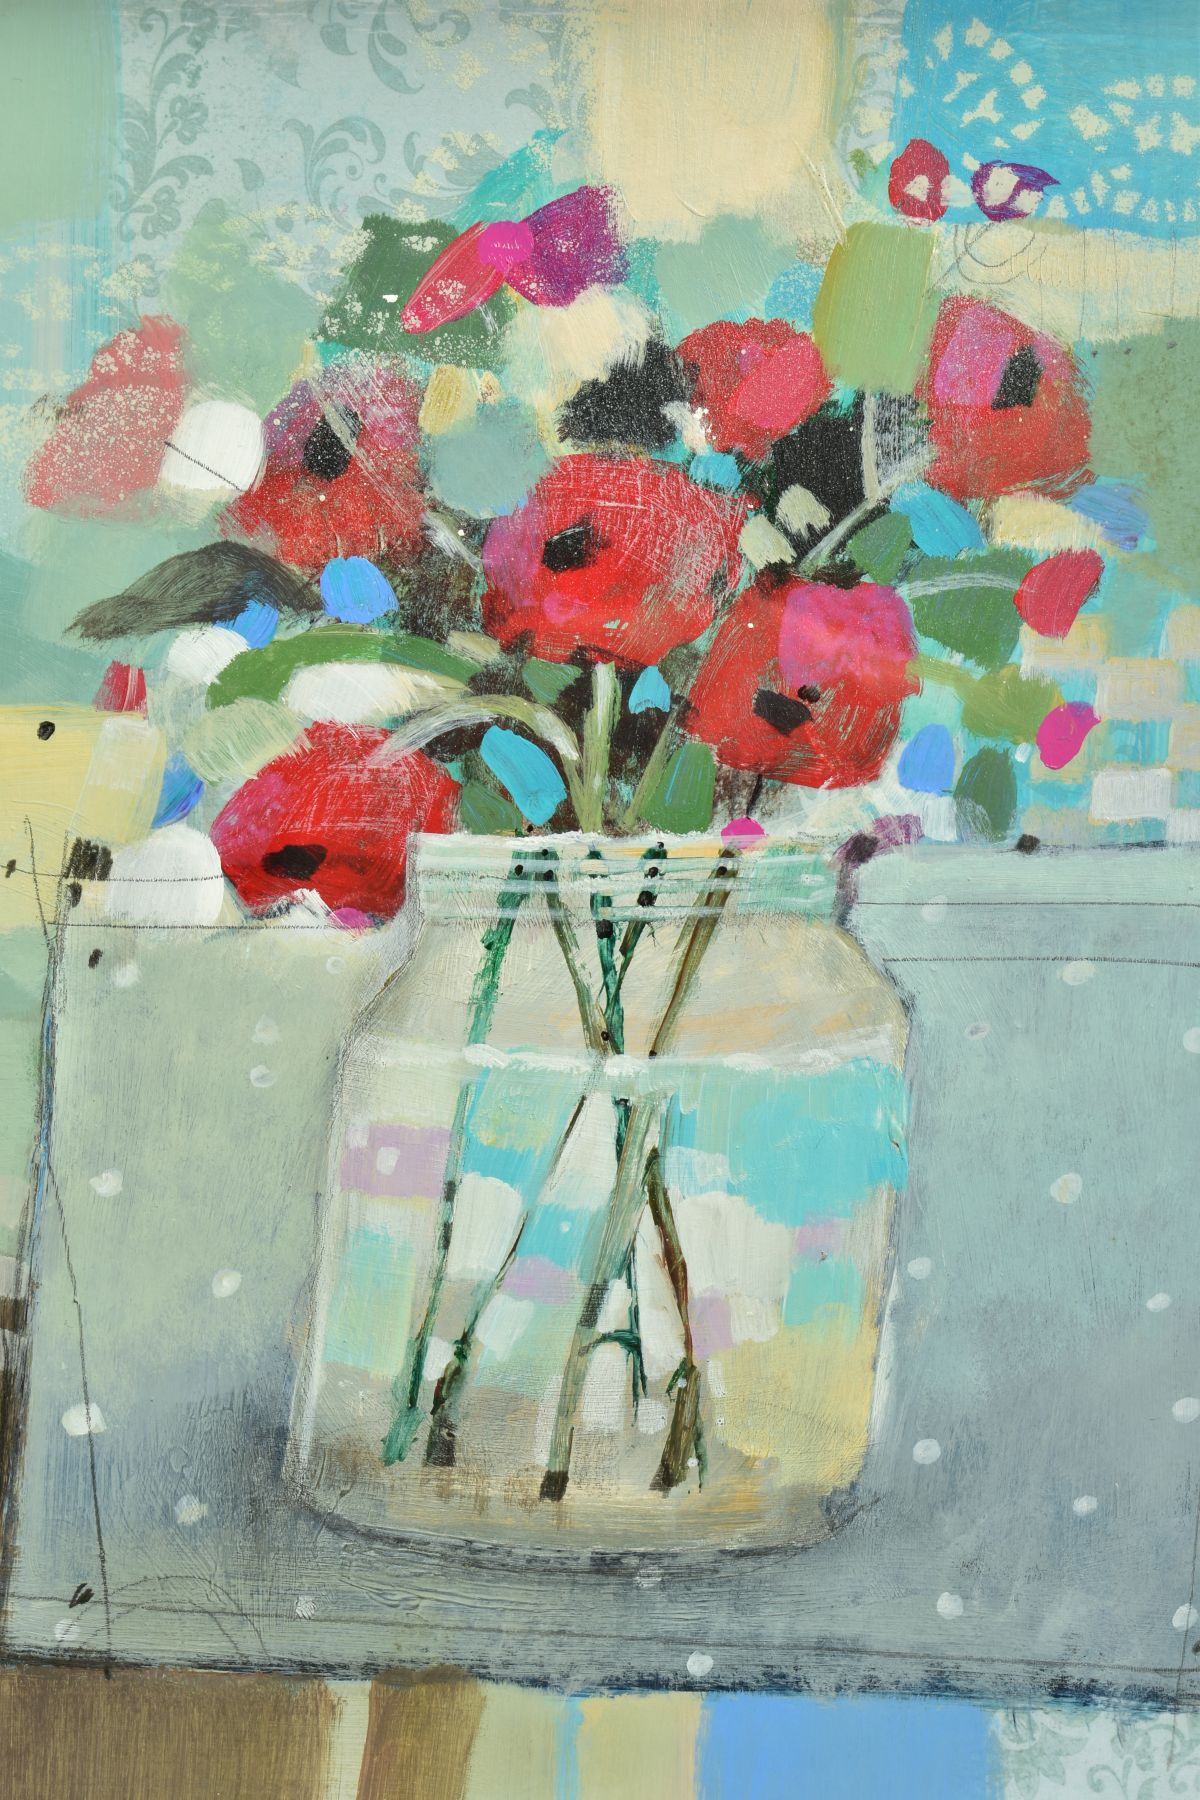 EMMA S. DAVIS (SCOTTISH 1975), 'Poppies in a Jar', a still life study of wild flowers, signed bottom - Image 2 of 5